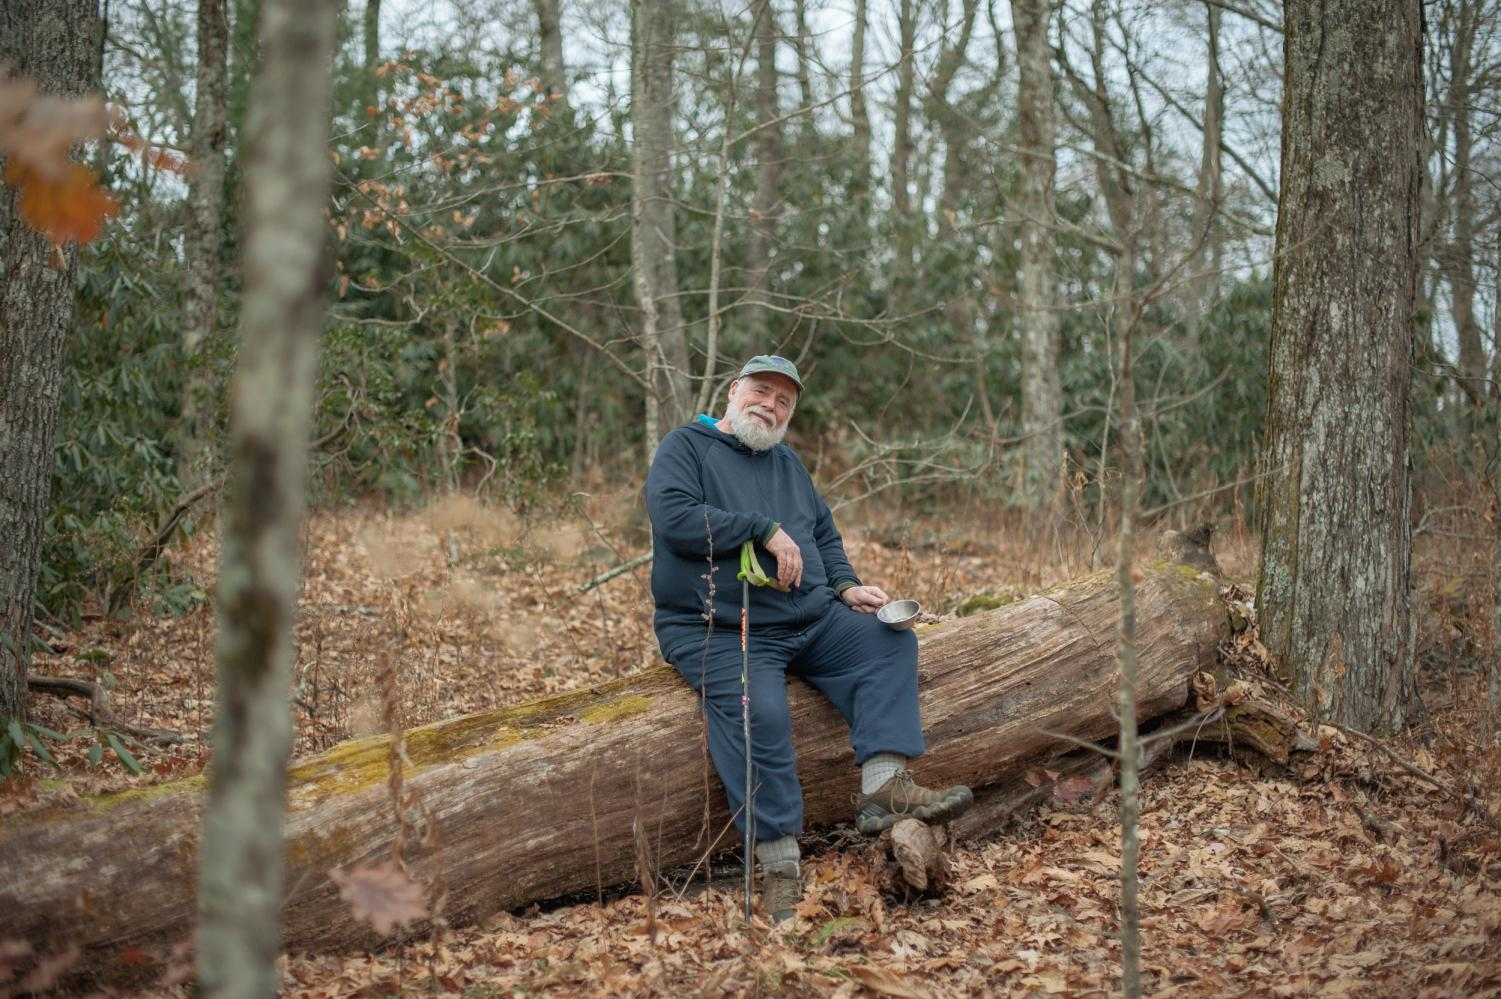 Warren Doyle is an Appalachian Trail fanatic. Since 1973, Doyle has hiked the trail a total of 18 times, founded the Appalachian Trail Institute, and even spent a night in jail after hiking off trail.